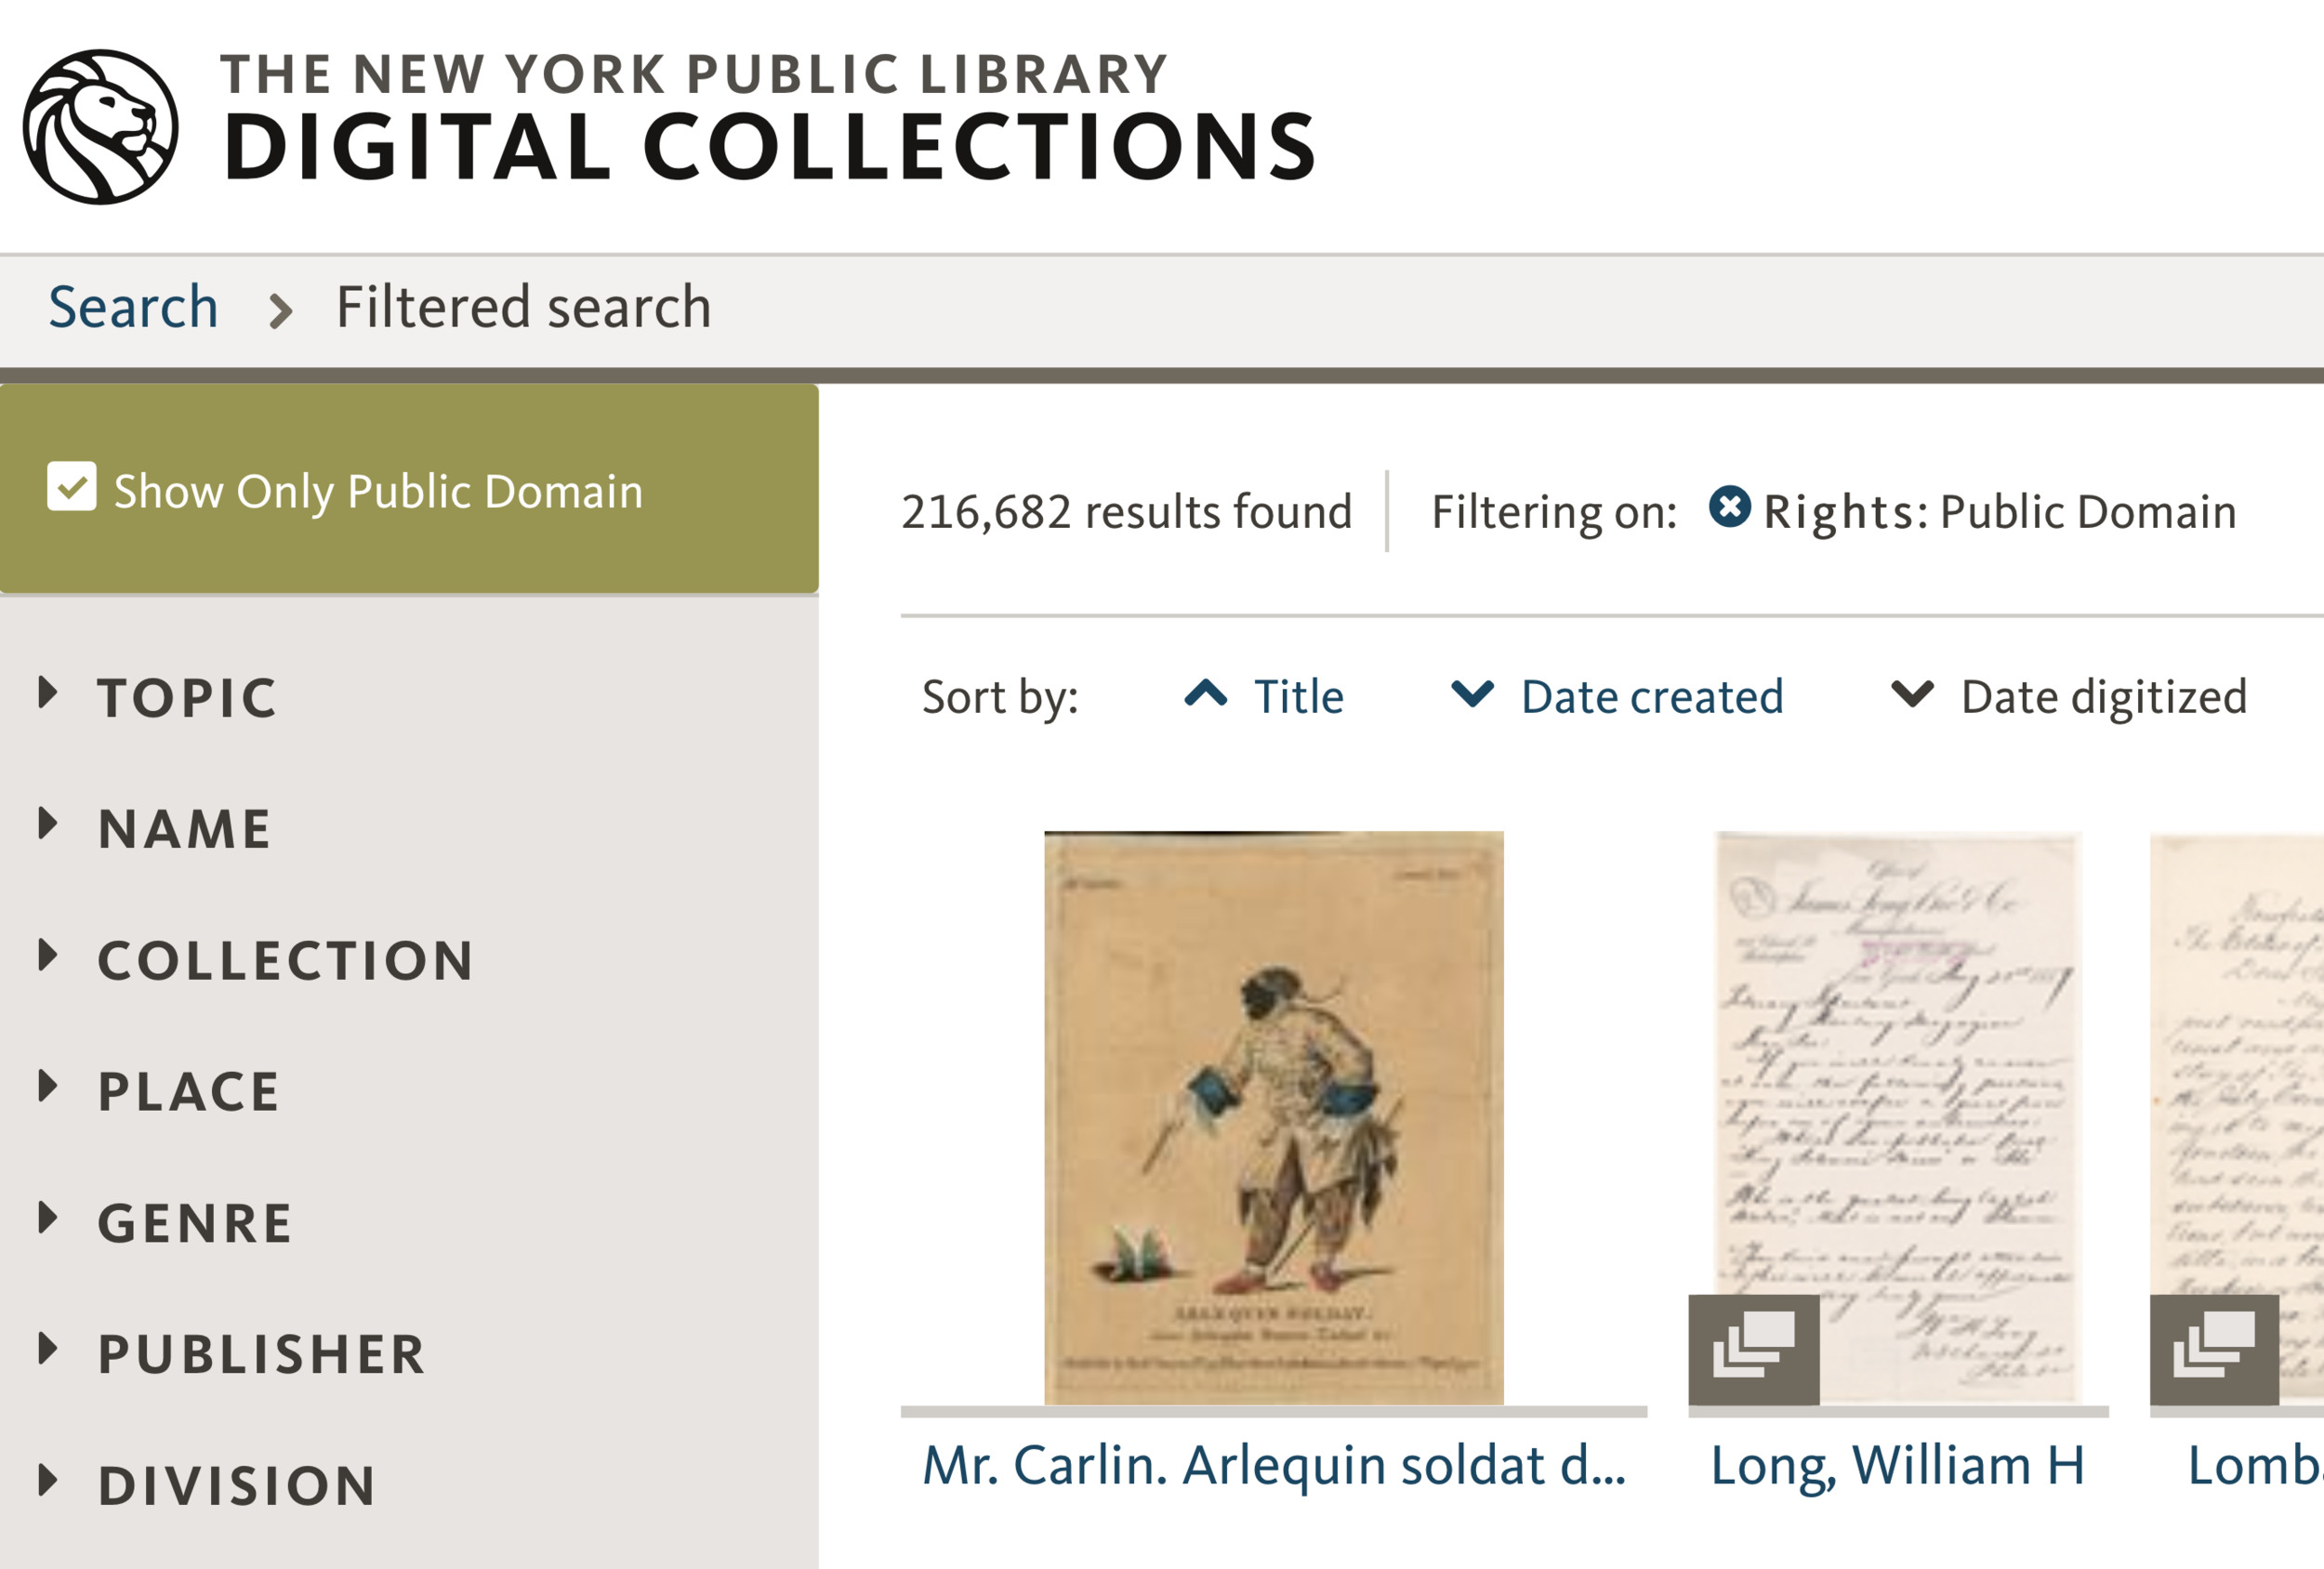 Most digital collections will contain public domain works. Filtering by license type can help you find them.